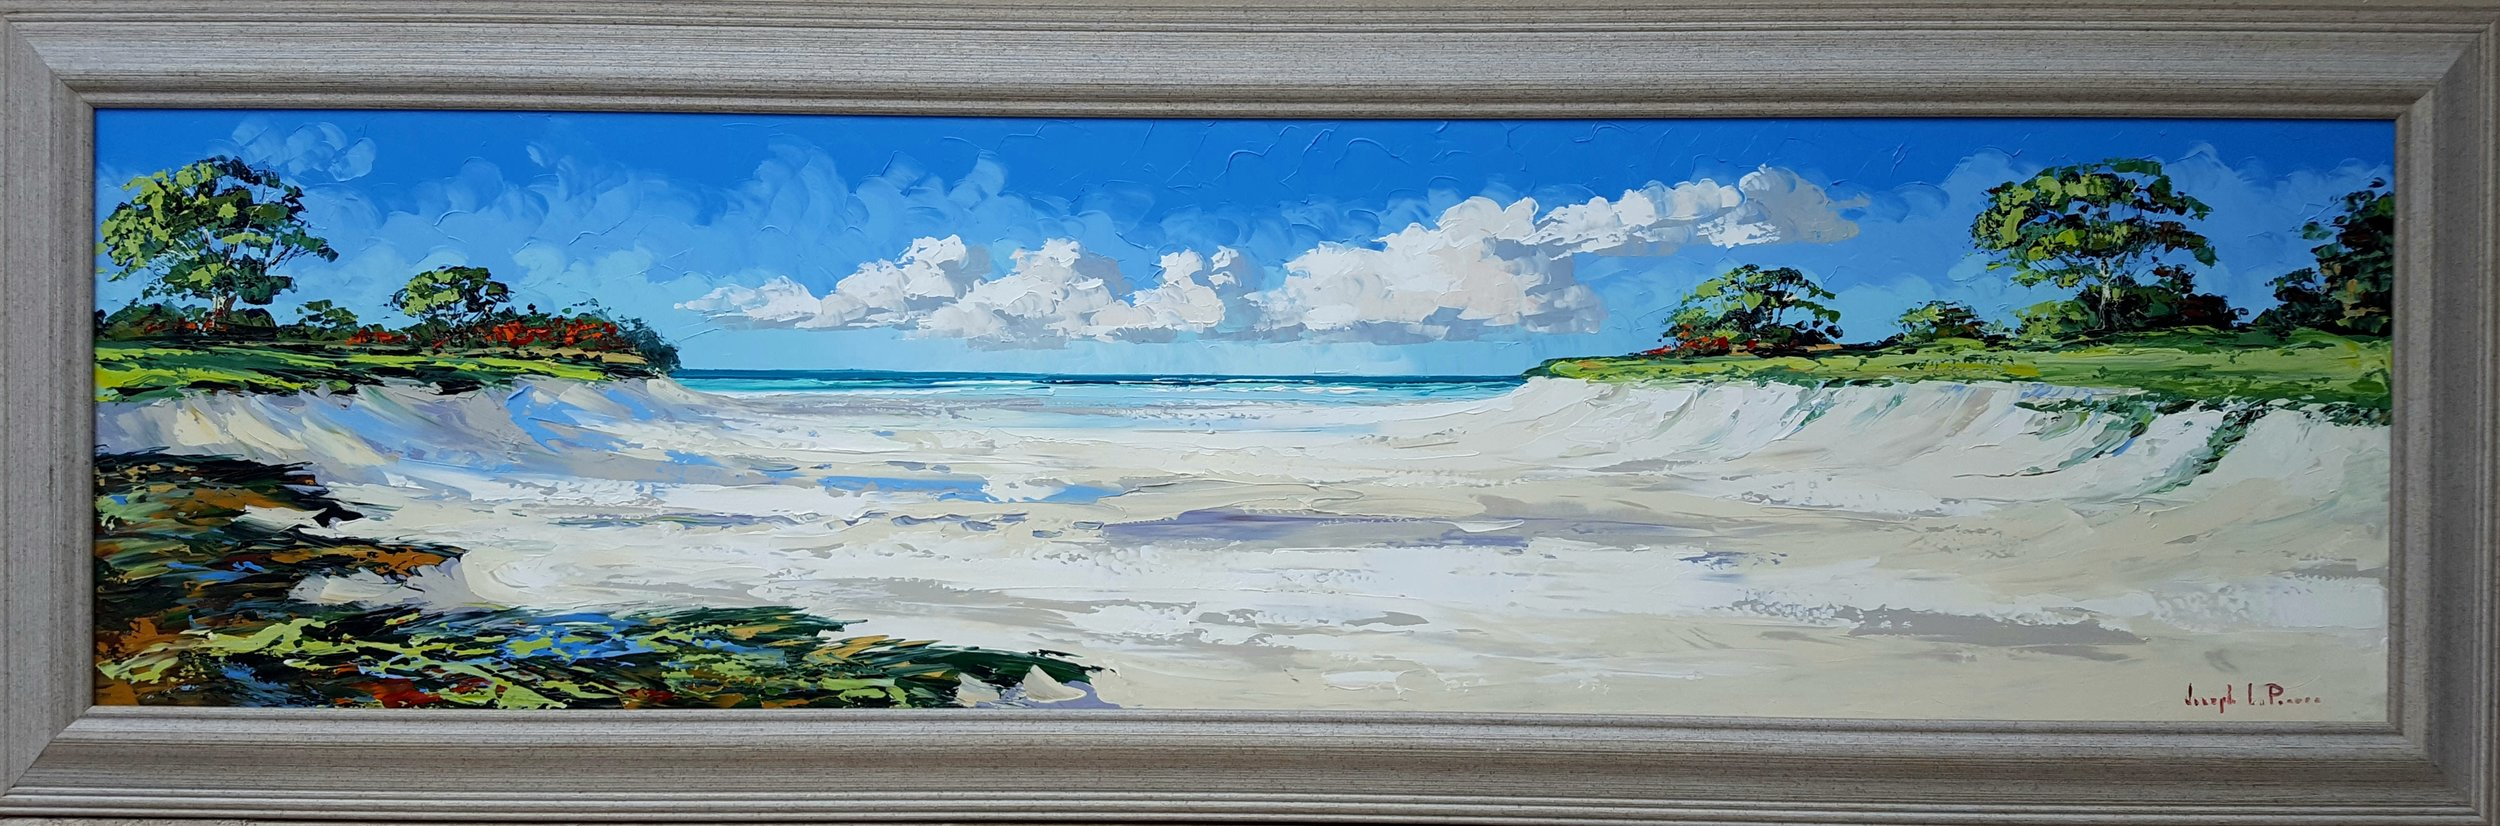 """""""Northern Access"""" - 24x90 - $5,200.00"""